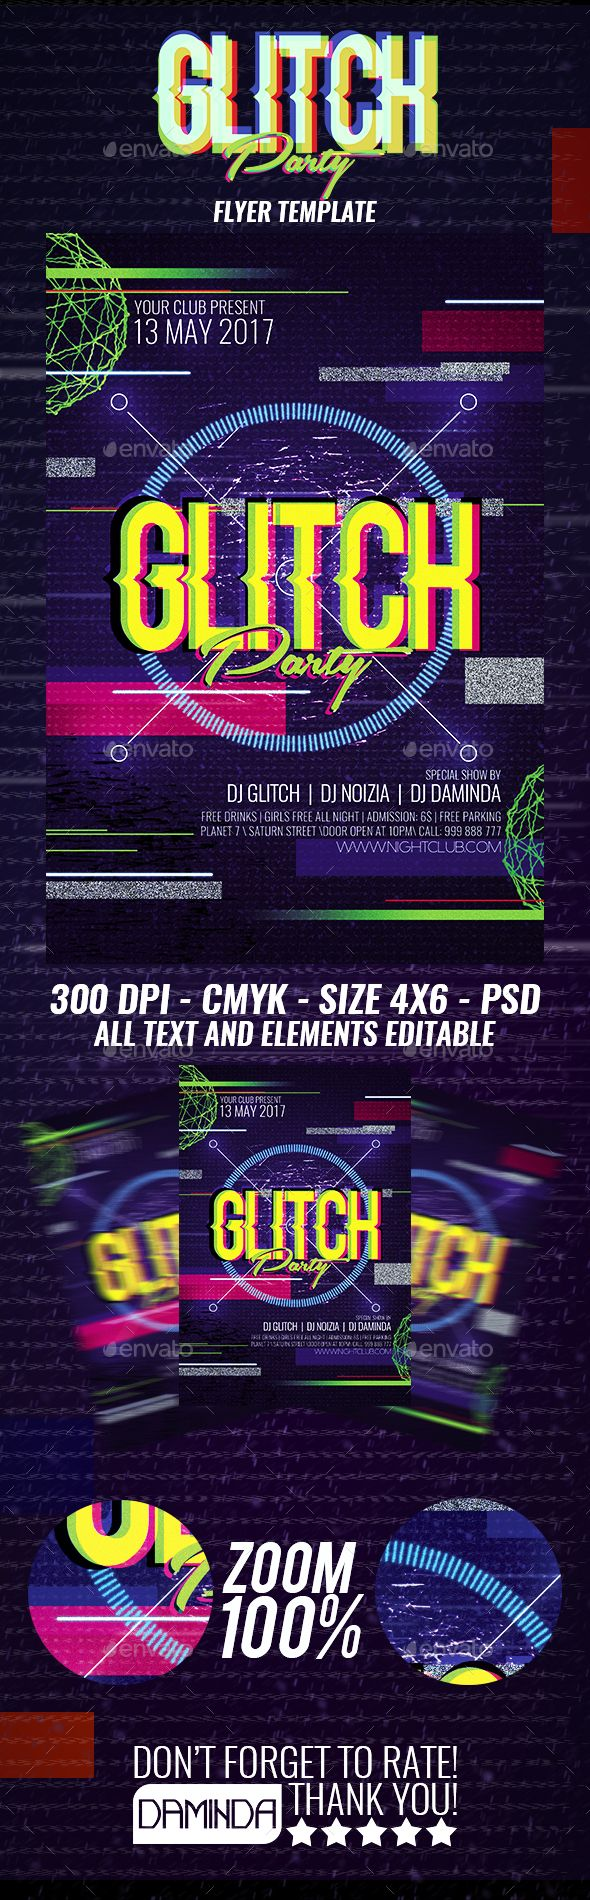 Glitch Party Flyer Template